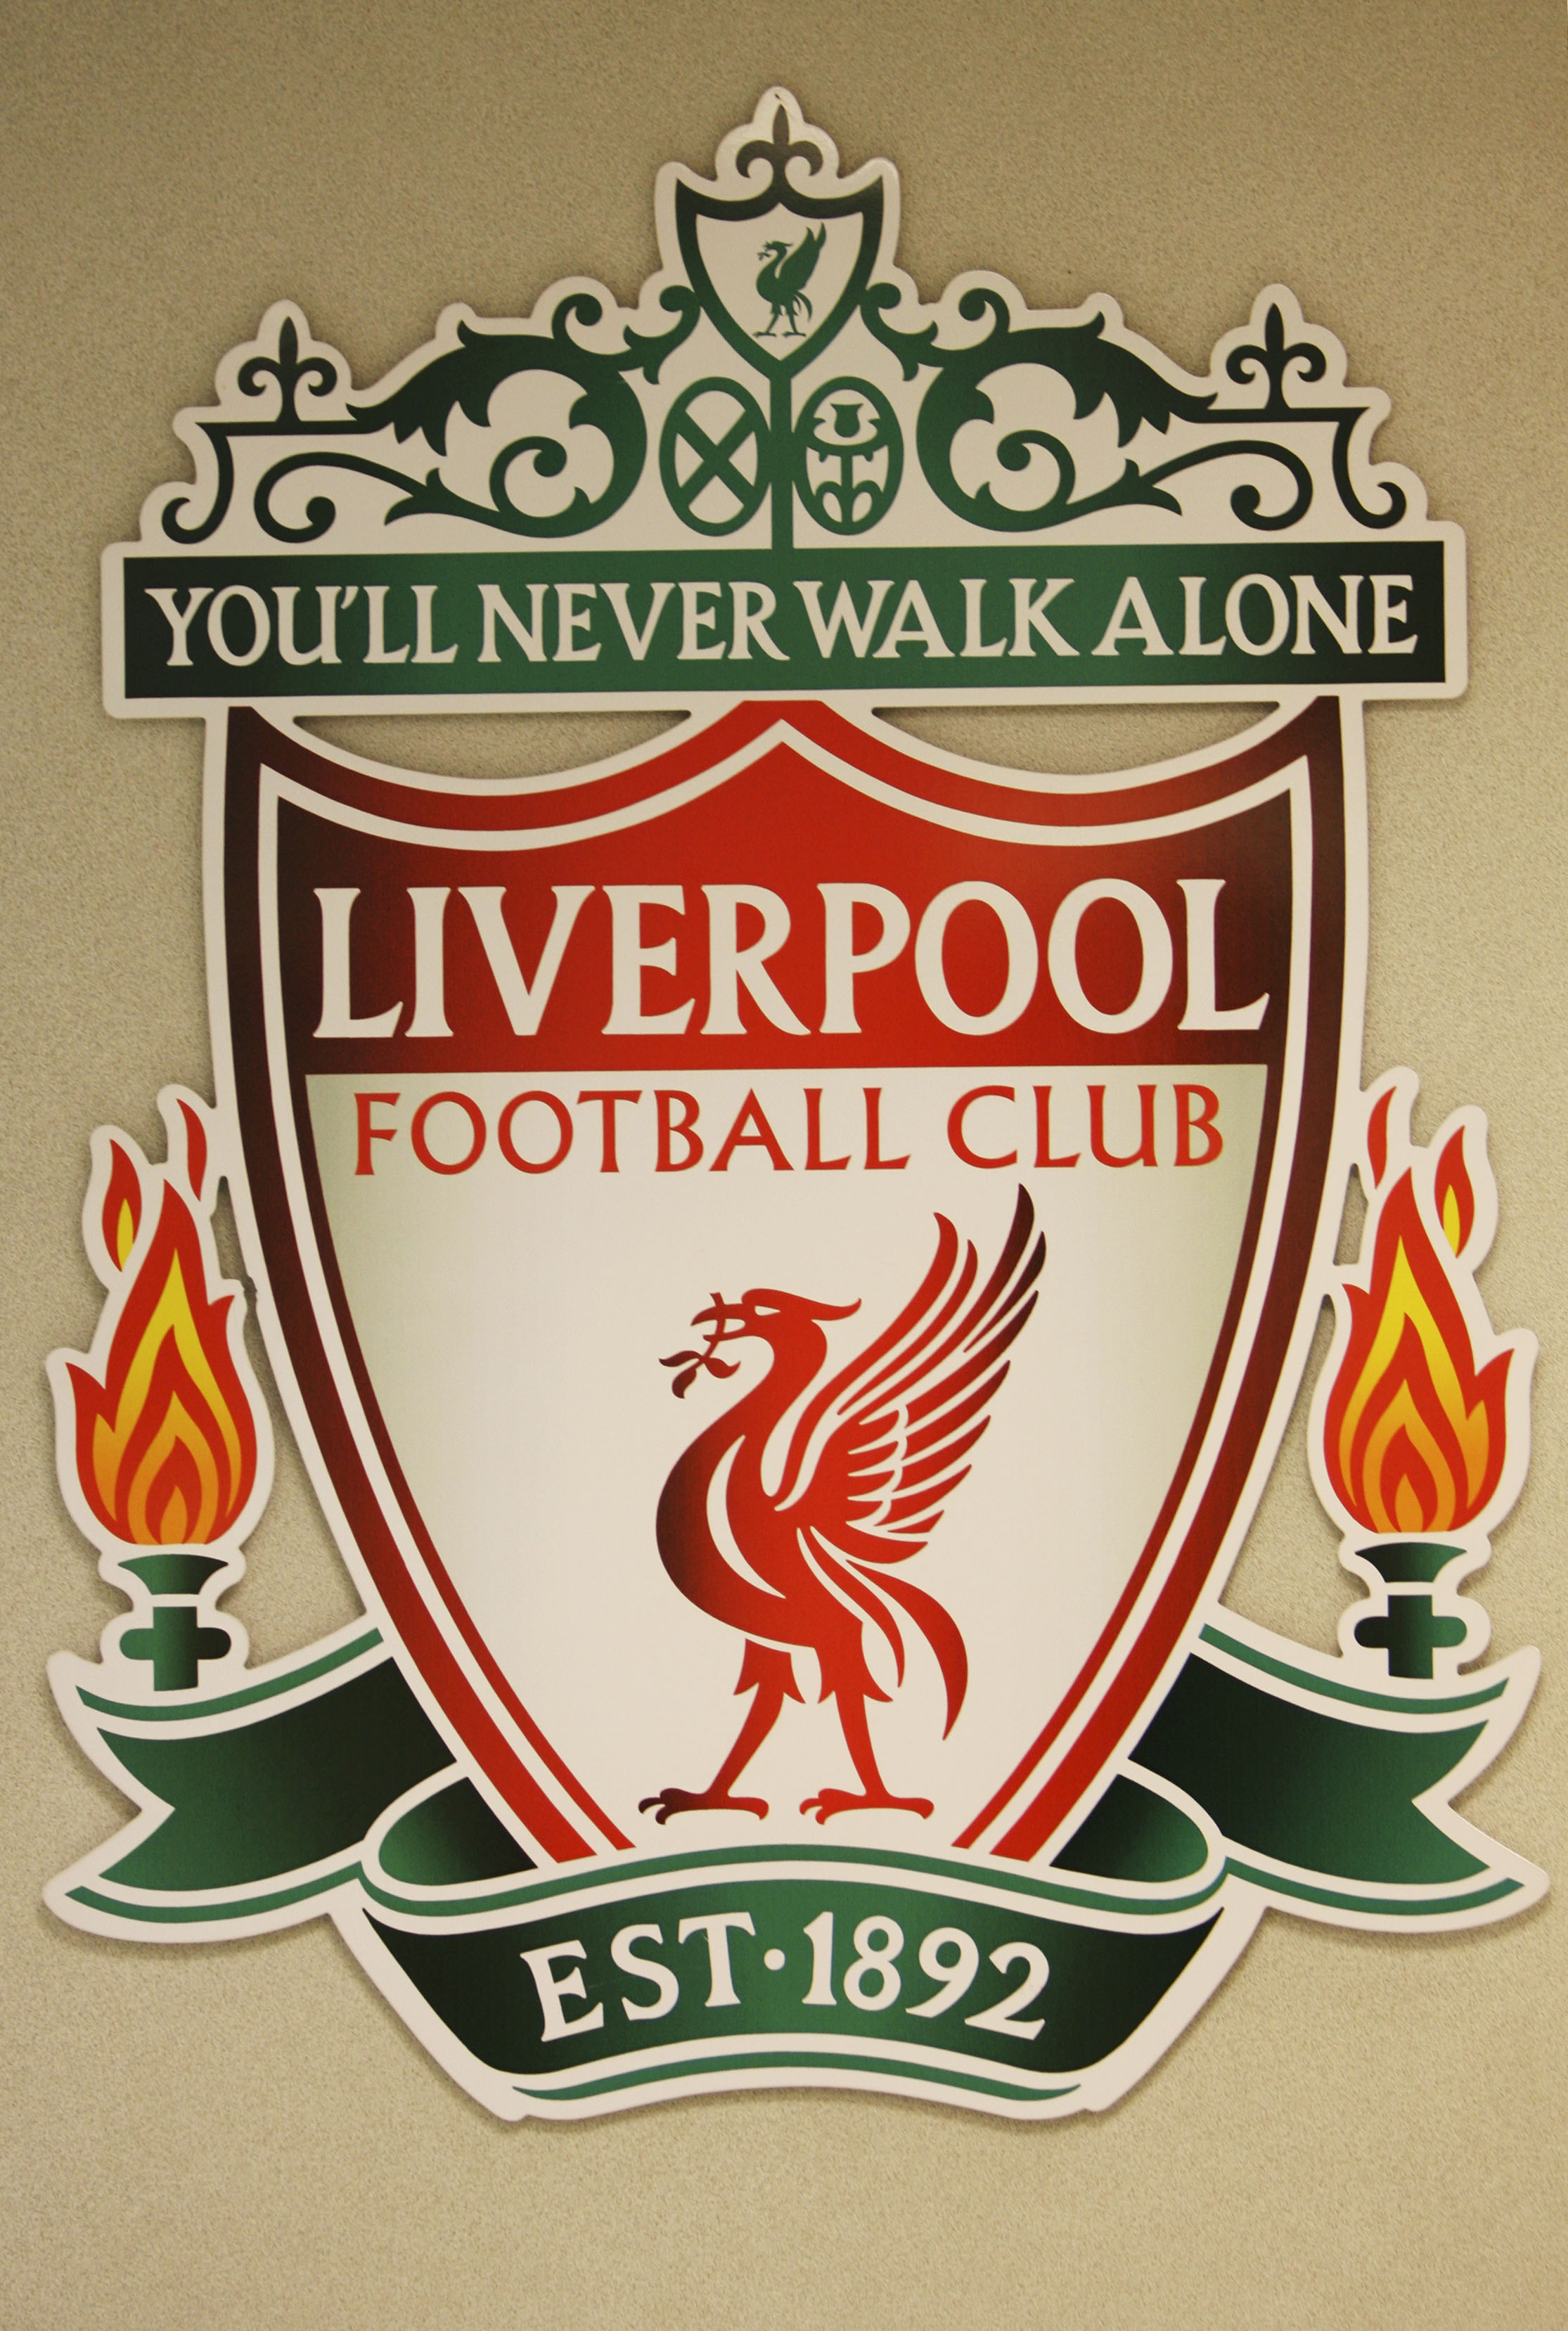 Liverpool Badge Images